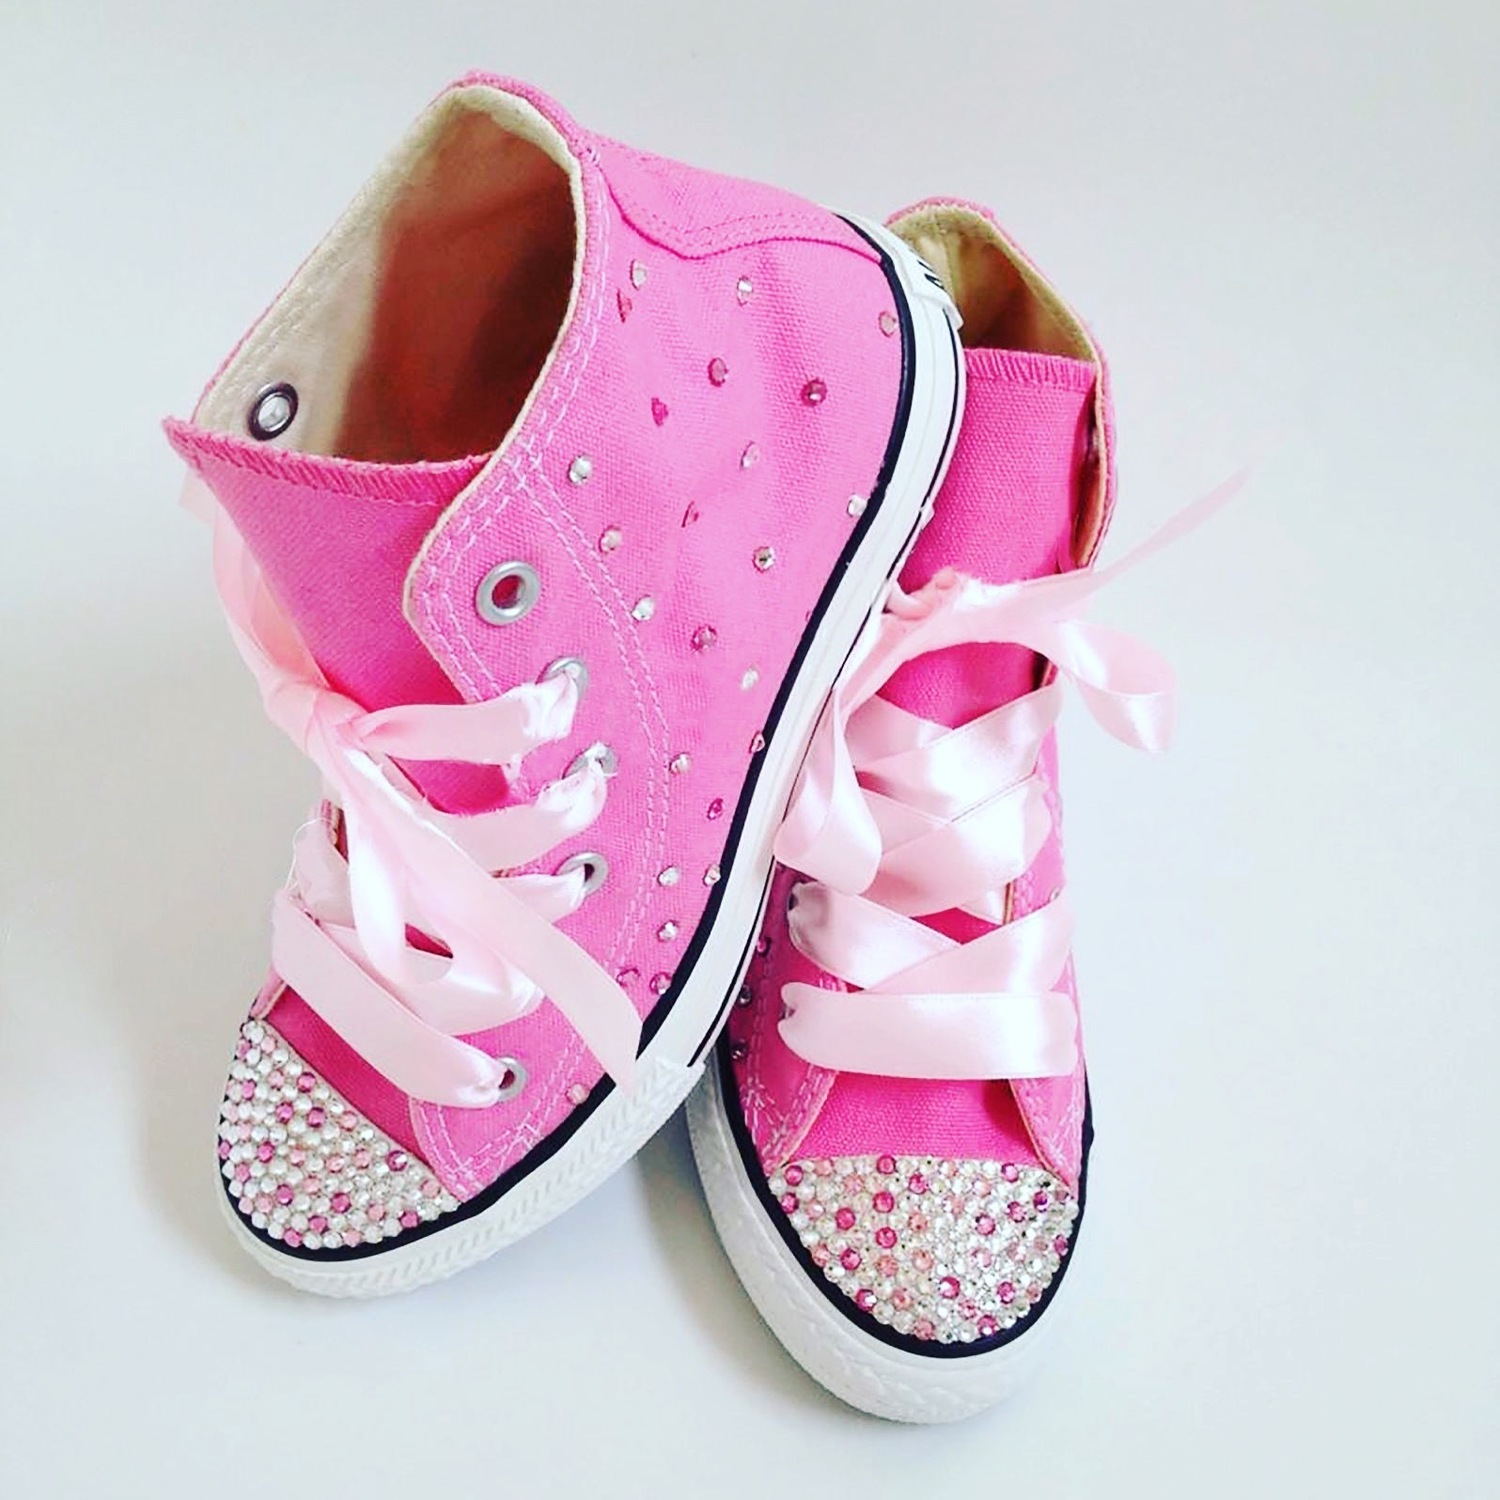 277e7582c9f98 Swarovski Crystal Sparkly Bling Converse Trainers (Children's - Any ...